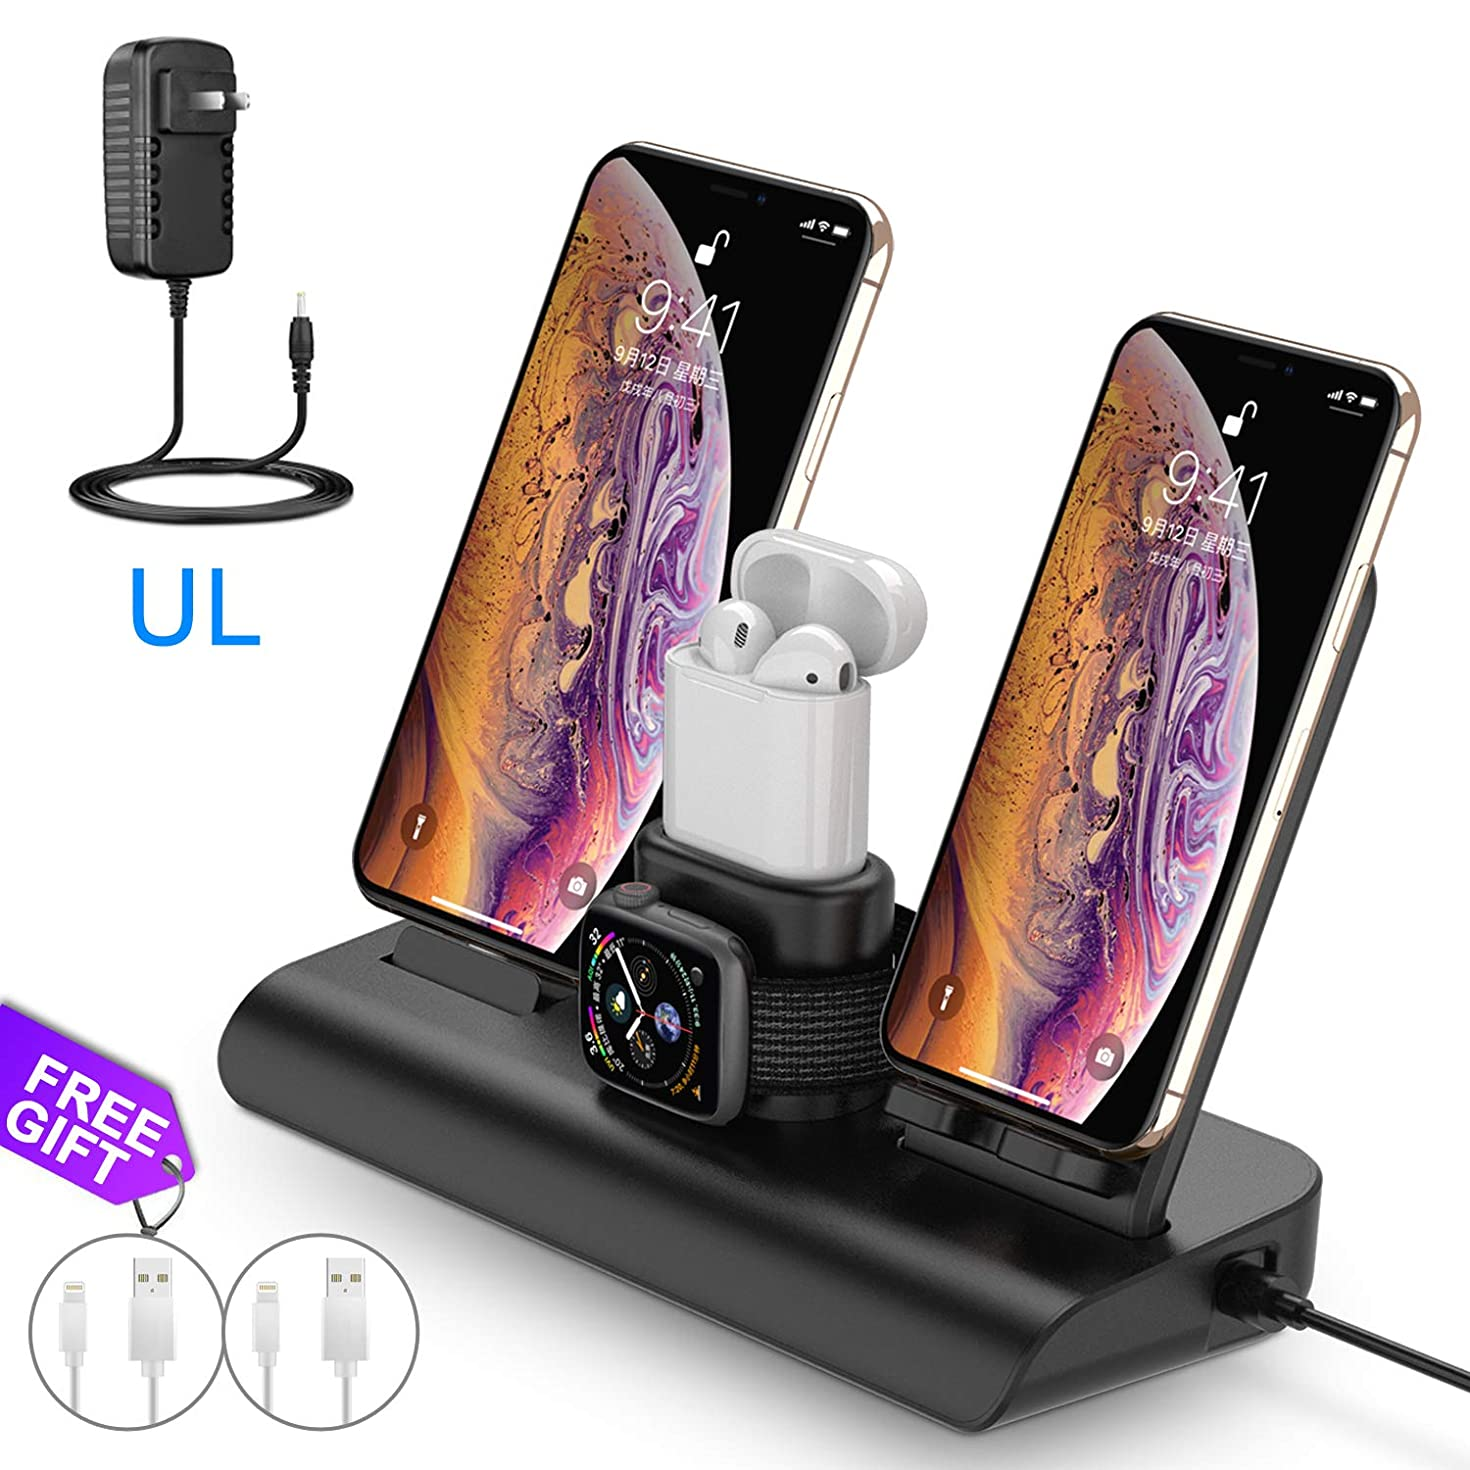 Wireless Charger for iPhone Charging Station for Apple, Wireless Charging Pad Stand for iPhone, Apple Watch Charging Stand with AirPods Charging Dock Wireless Charger for iPhone Xs XR X 8Plus